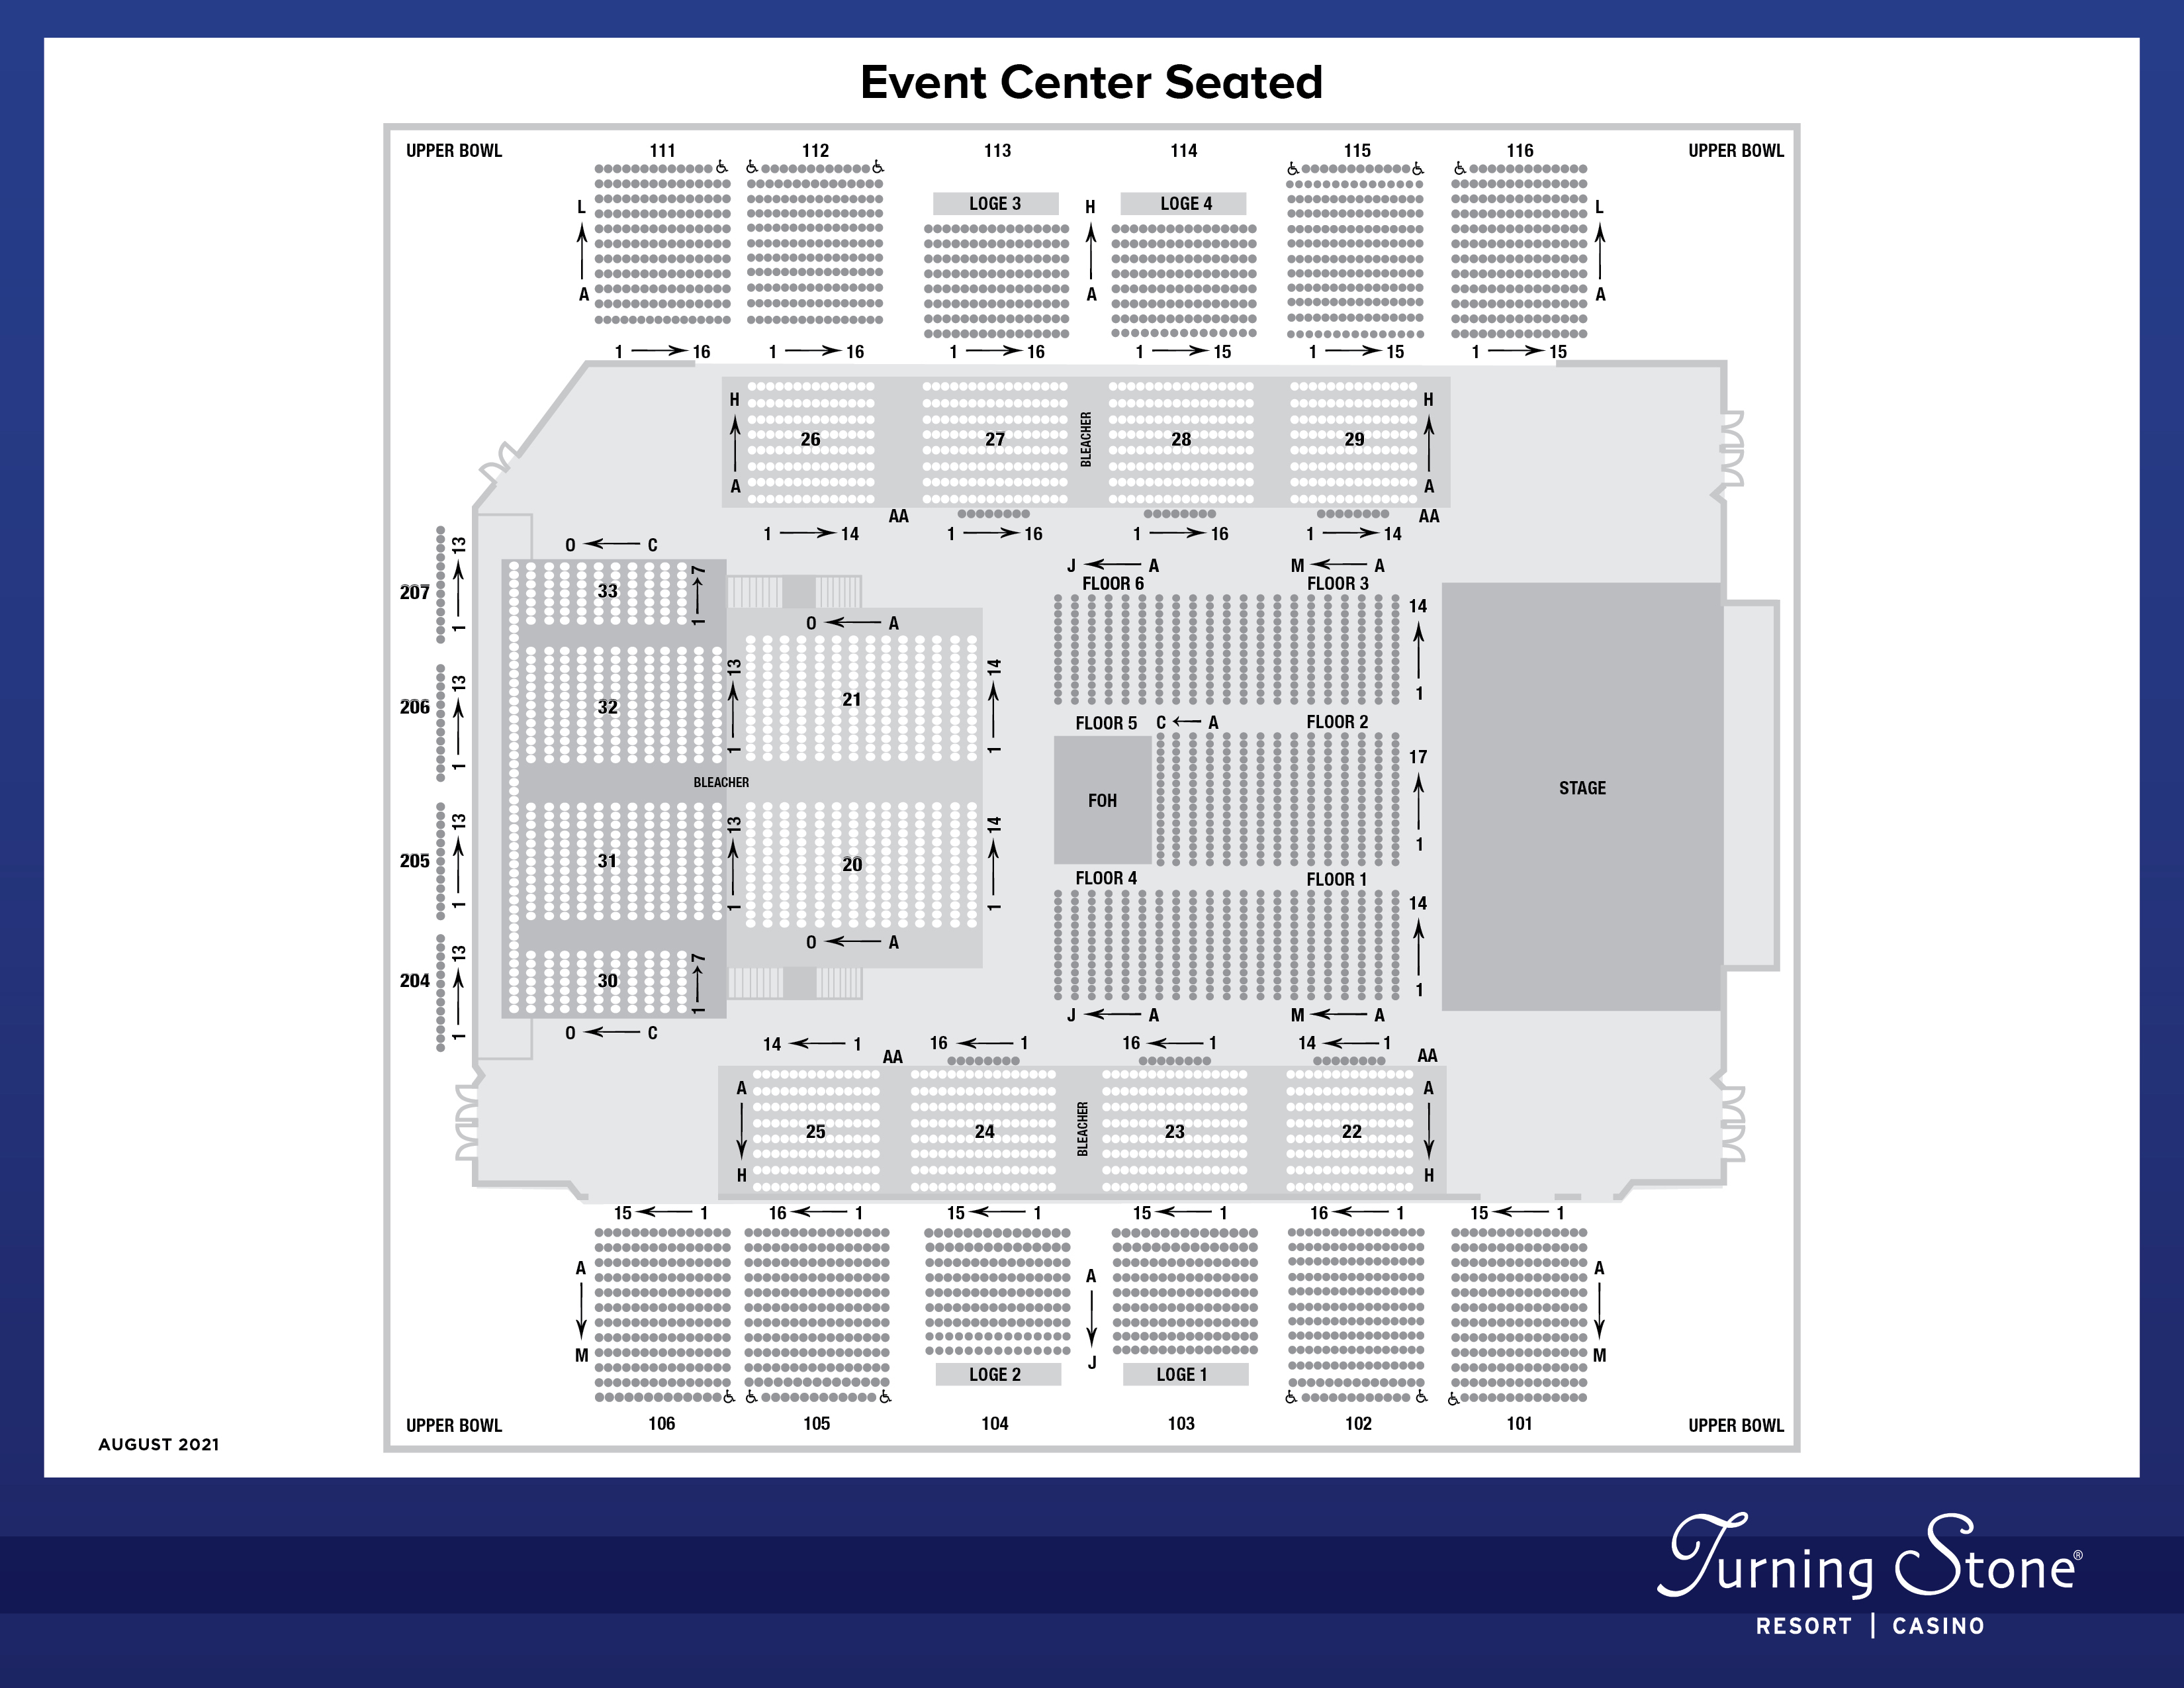 Event Center Seated